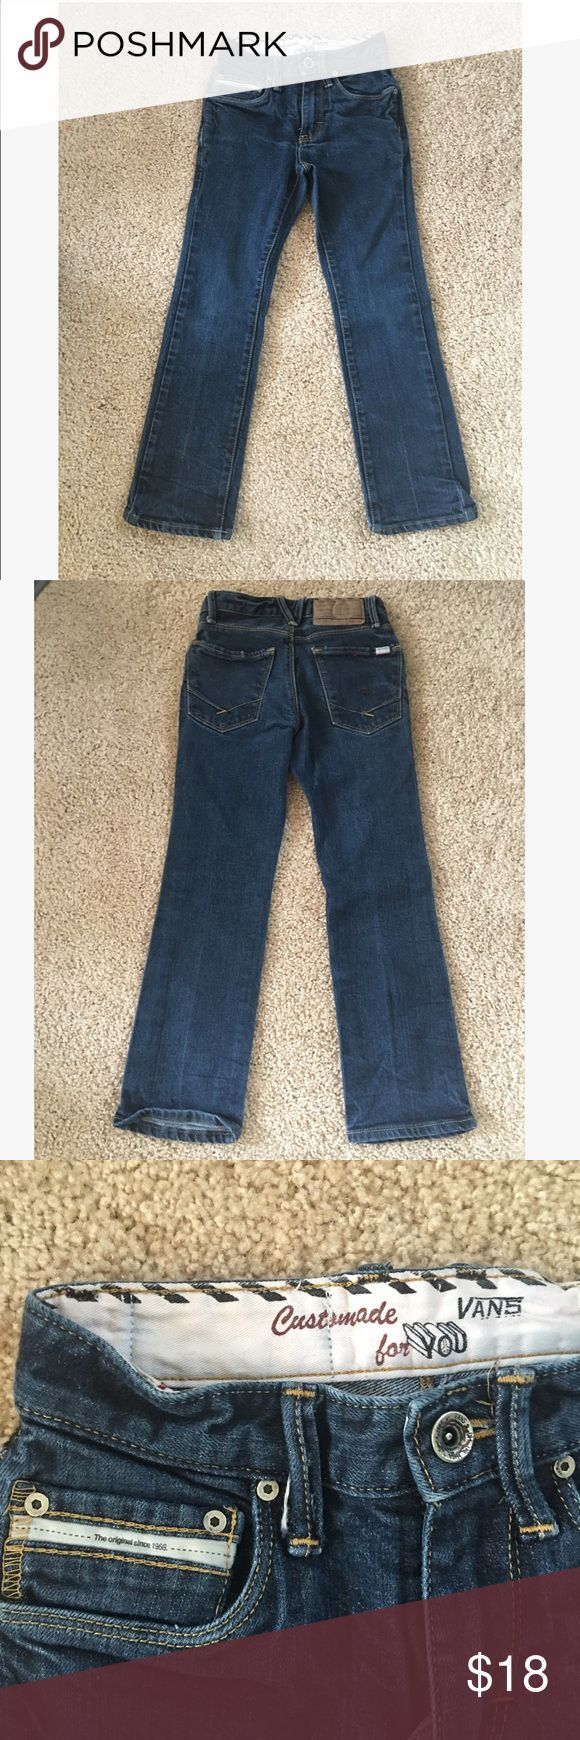 Vans for boys jeans sz: 6/7 Awesome pair of boys Vans jeans, hardly worn and in excellent condition sz: 22x23 equivalent to a boys sz: 6-7. Vans Bottoms Jeans